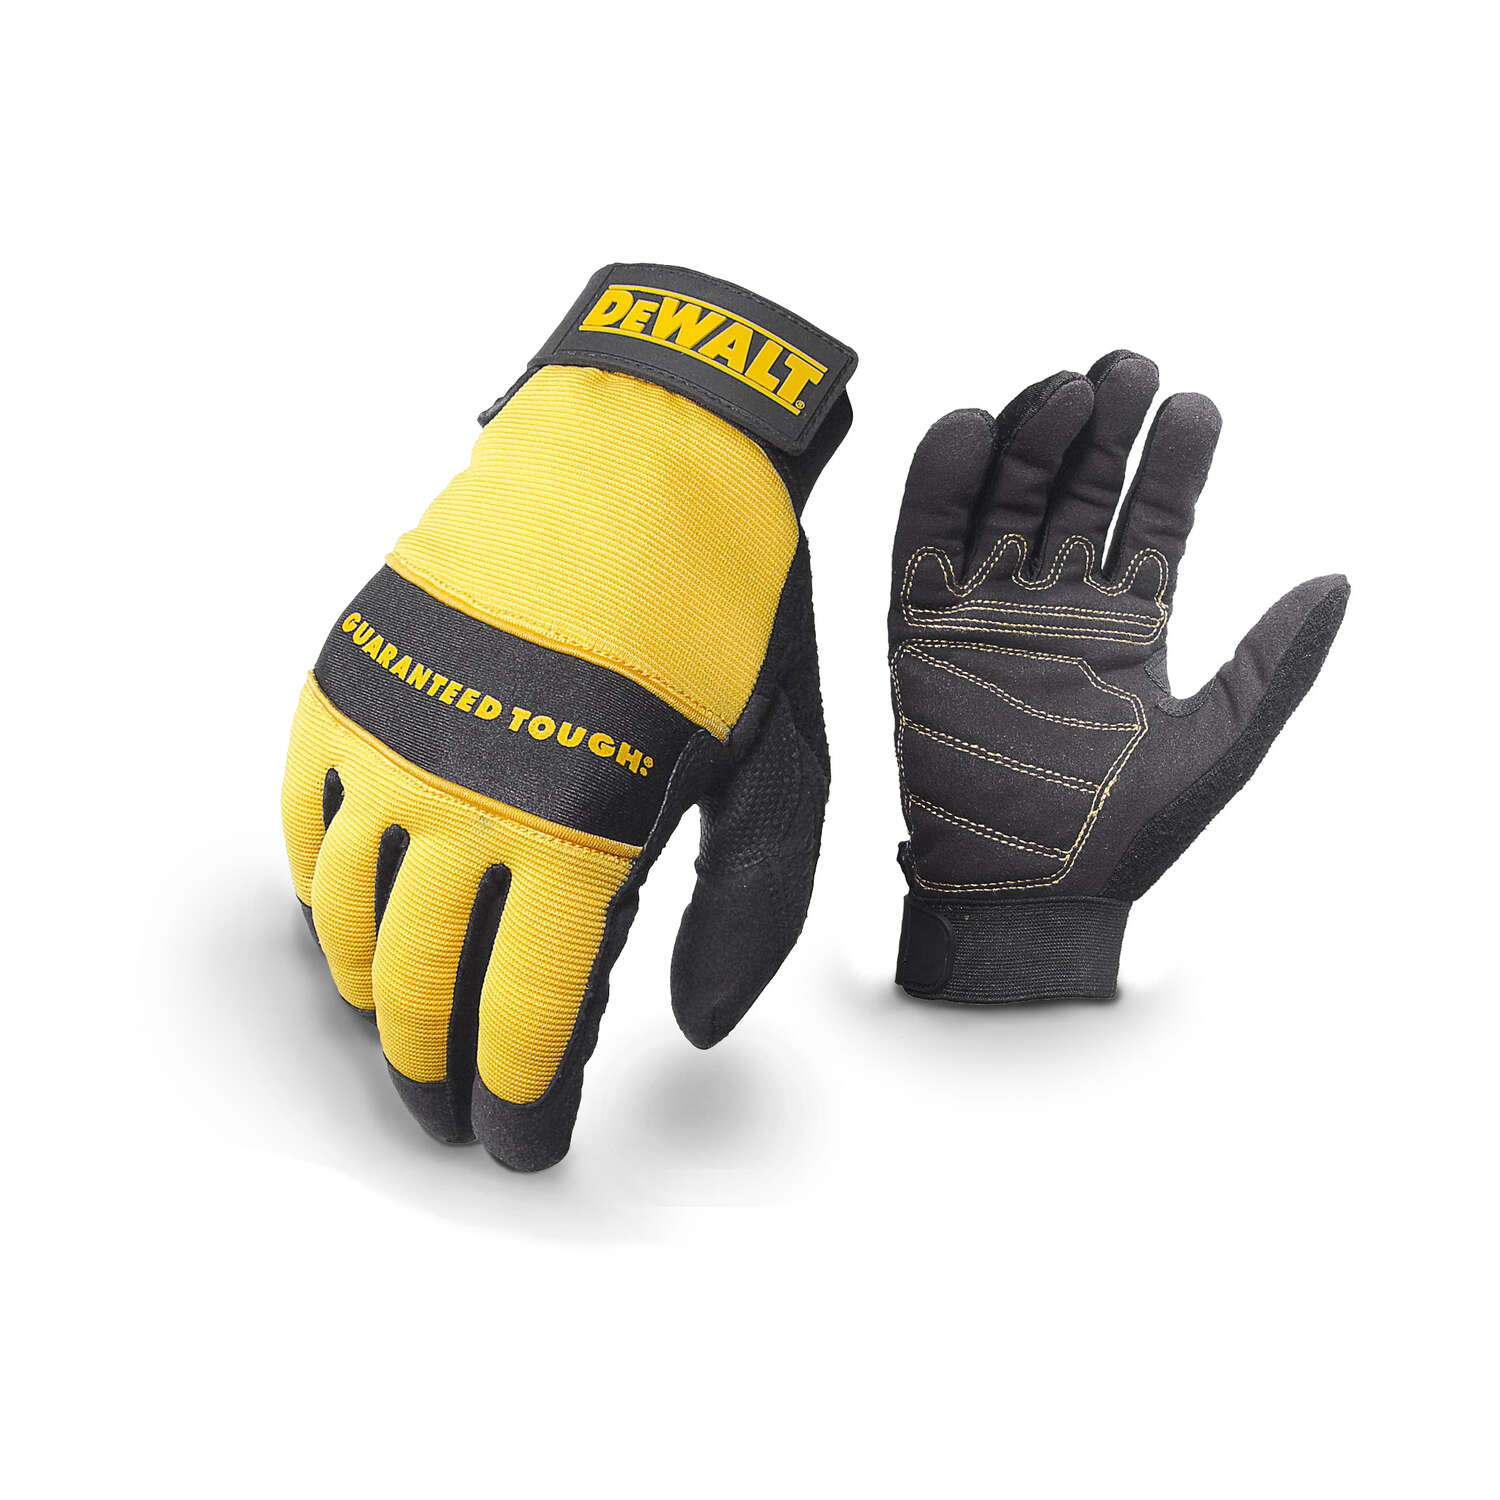 DeWalt Radians Unisex Synthetic Leather All Purpose Gloves Black/Yellow M 1 pk